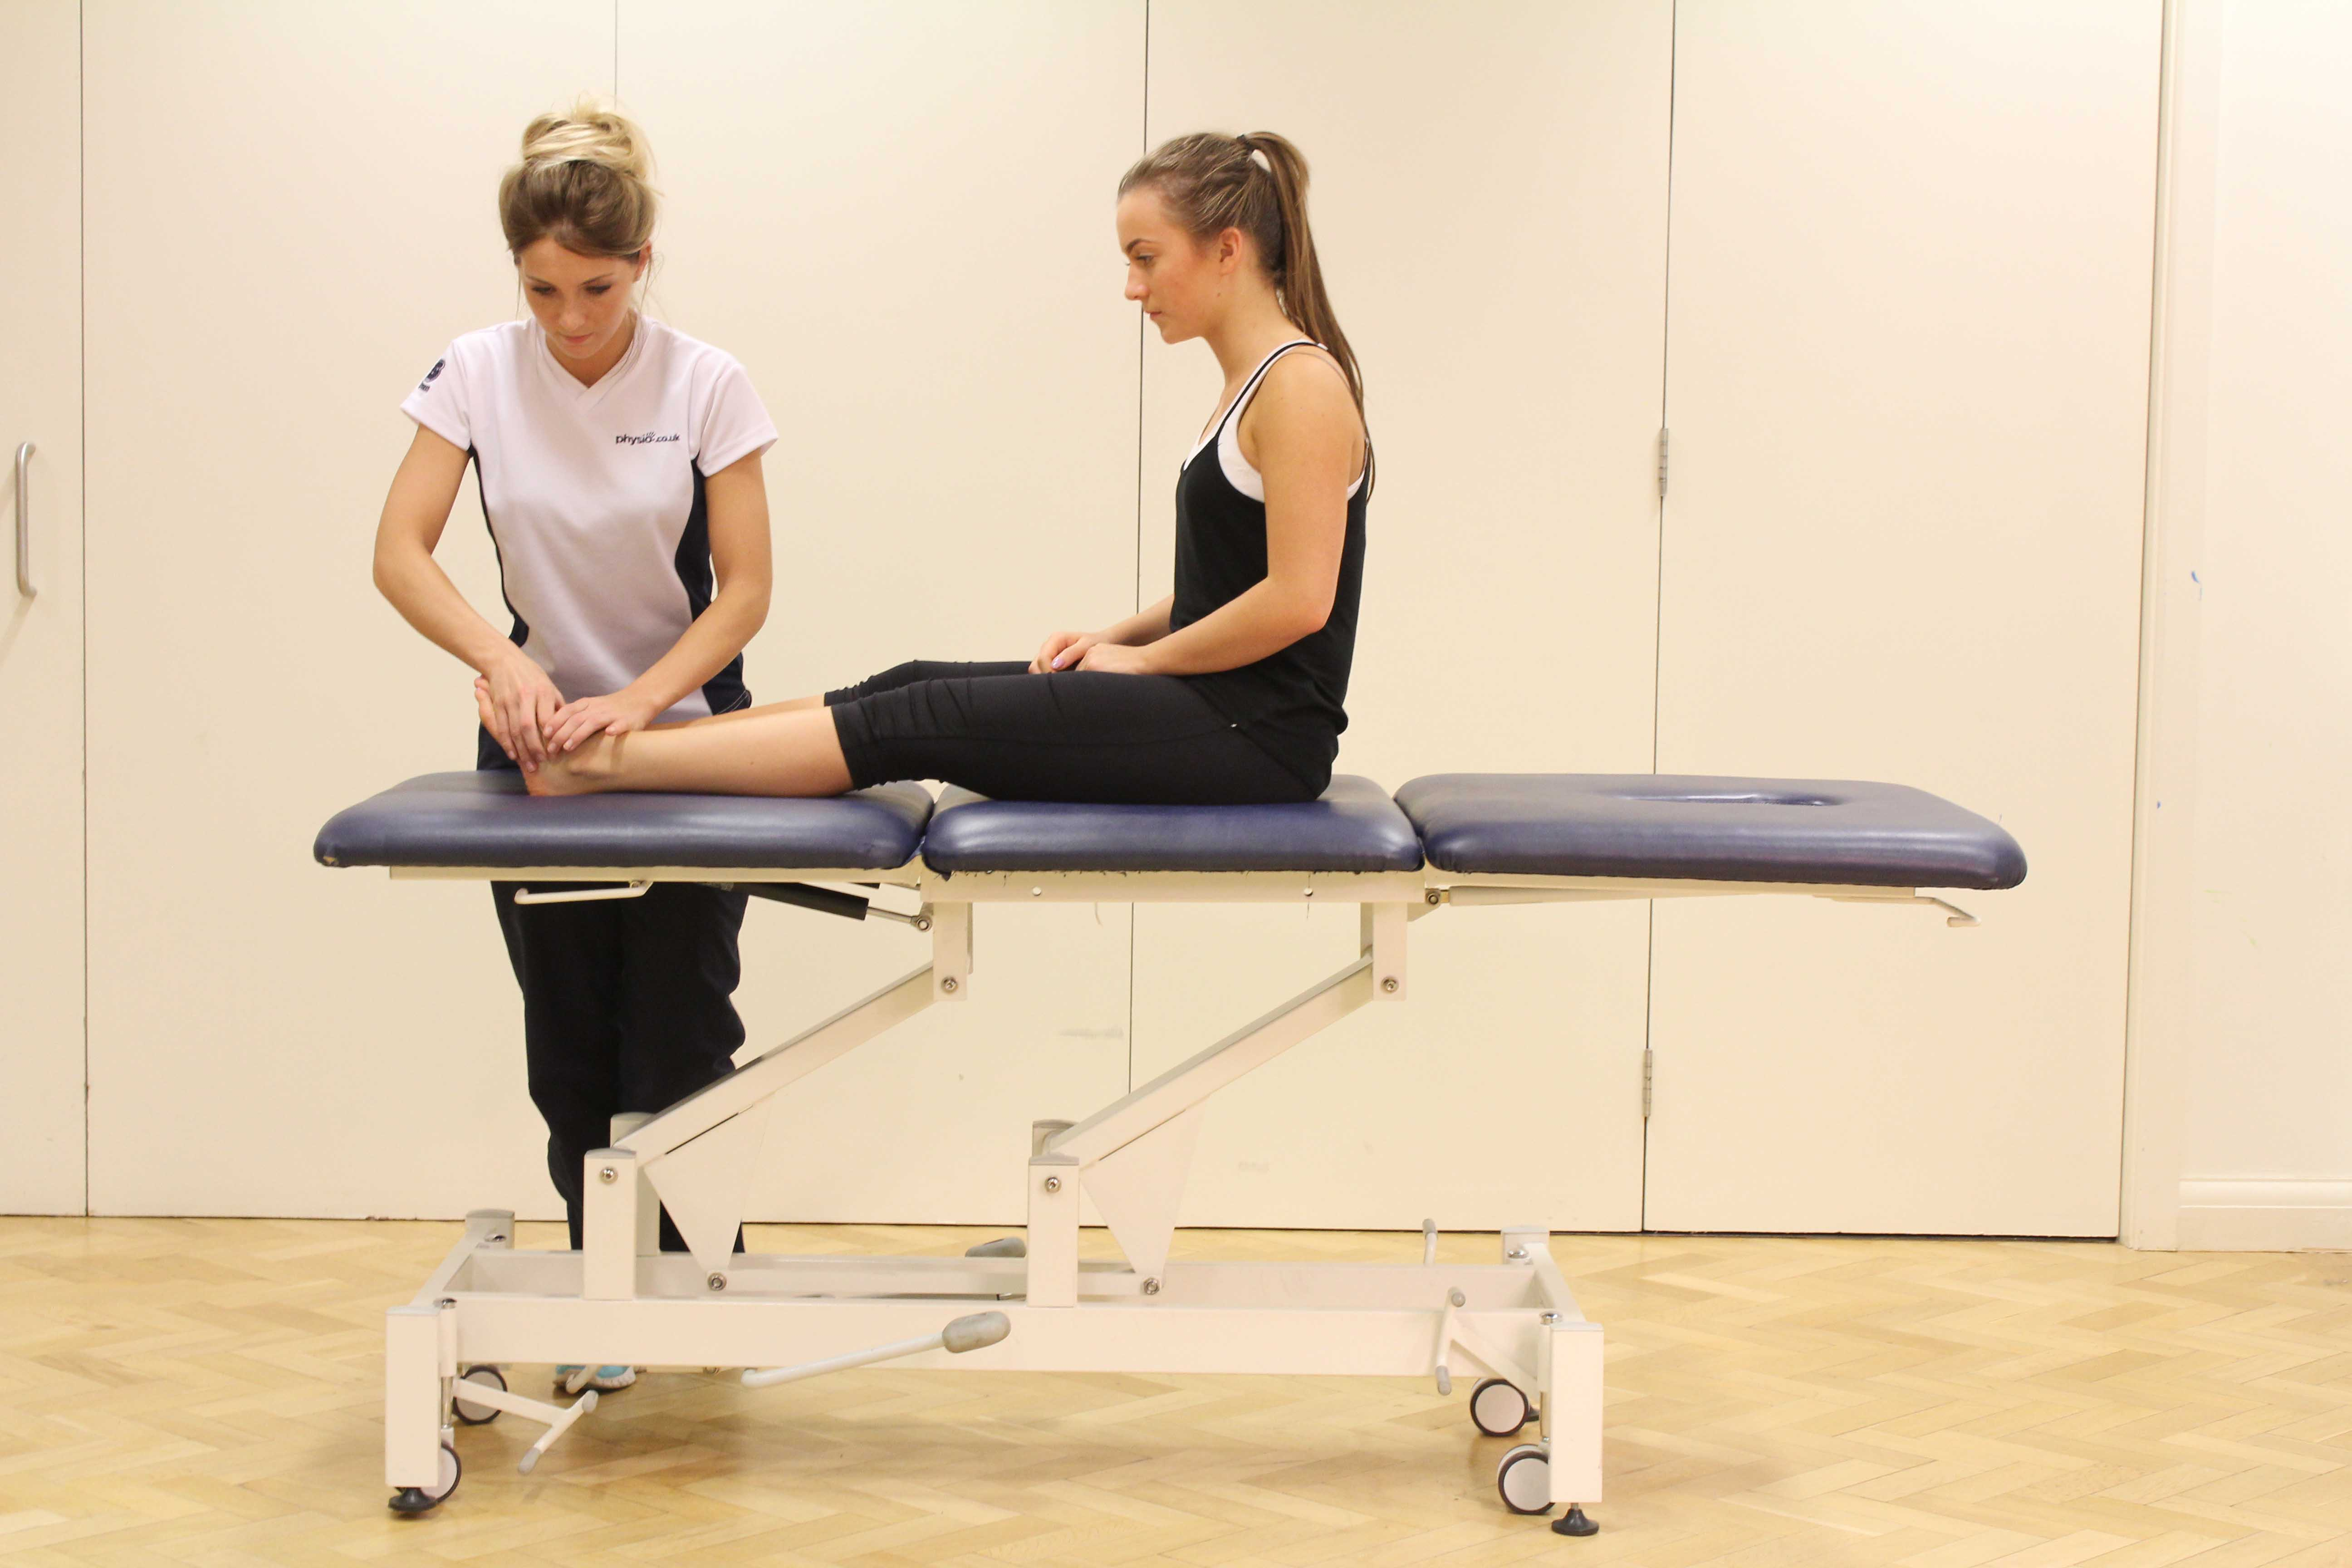 Mobilisations and stretches applied to the connective tissues in the ankle